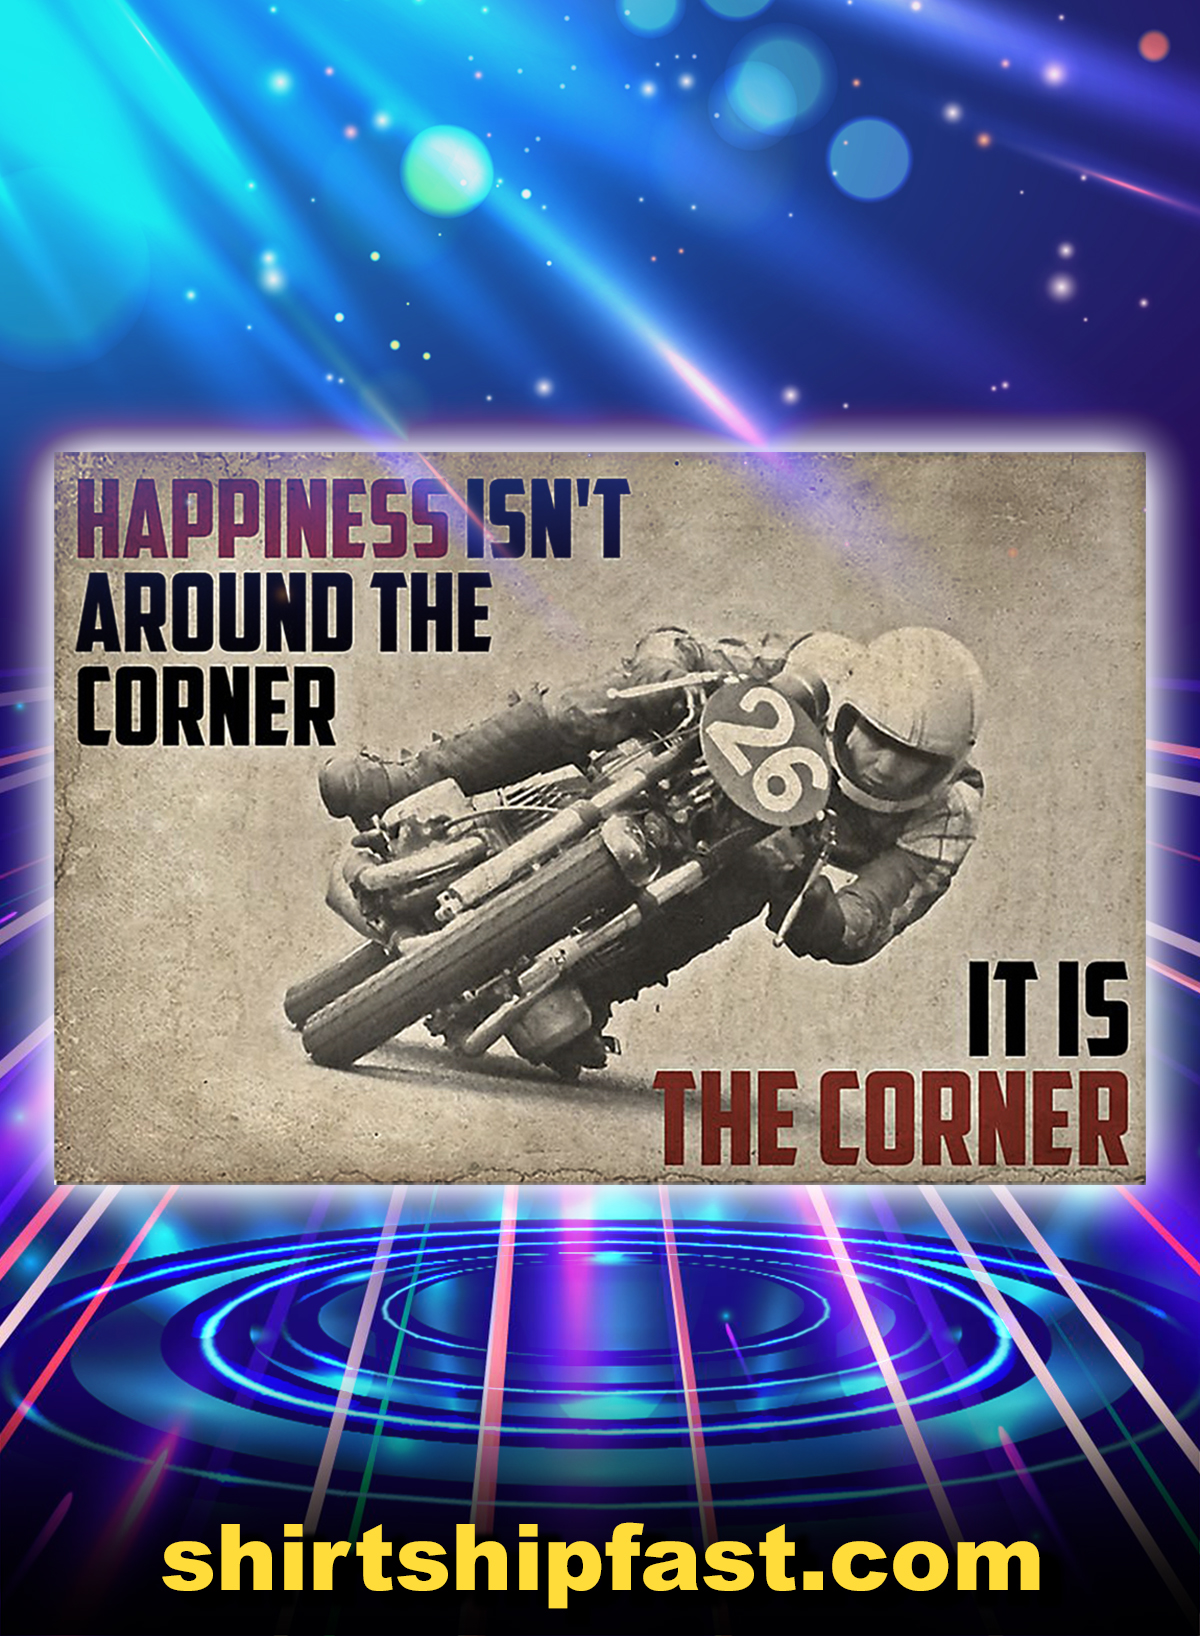 Poster Motorcycle happiness isn't around the corner it is the corner - A1